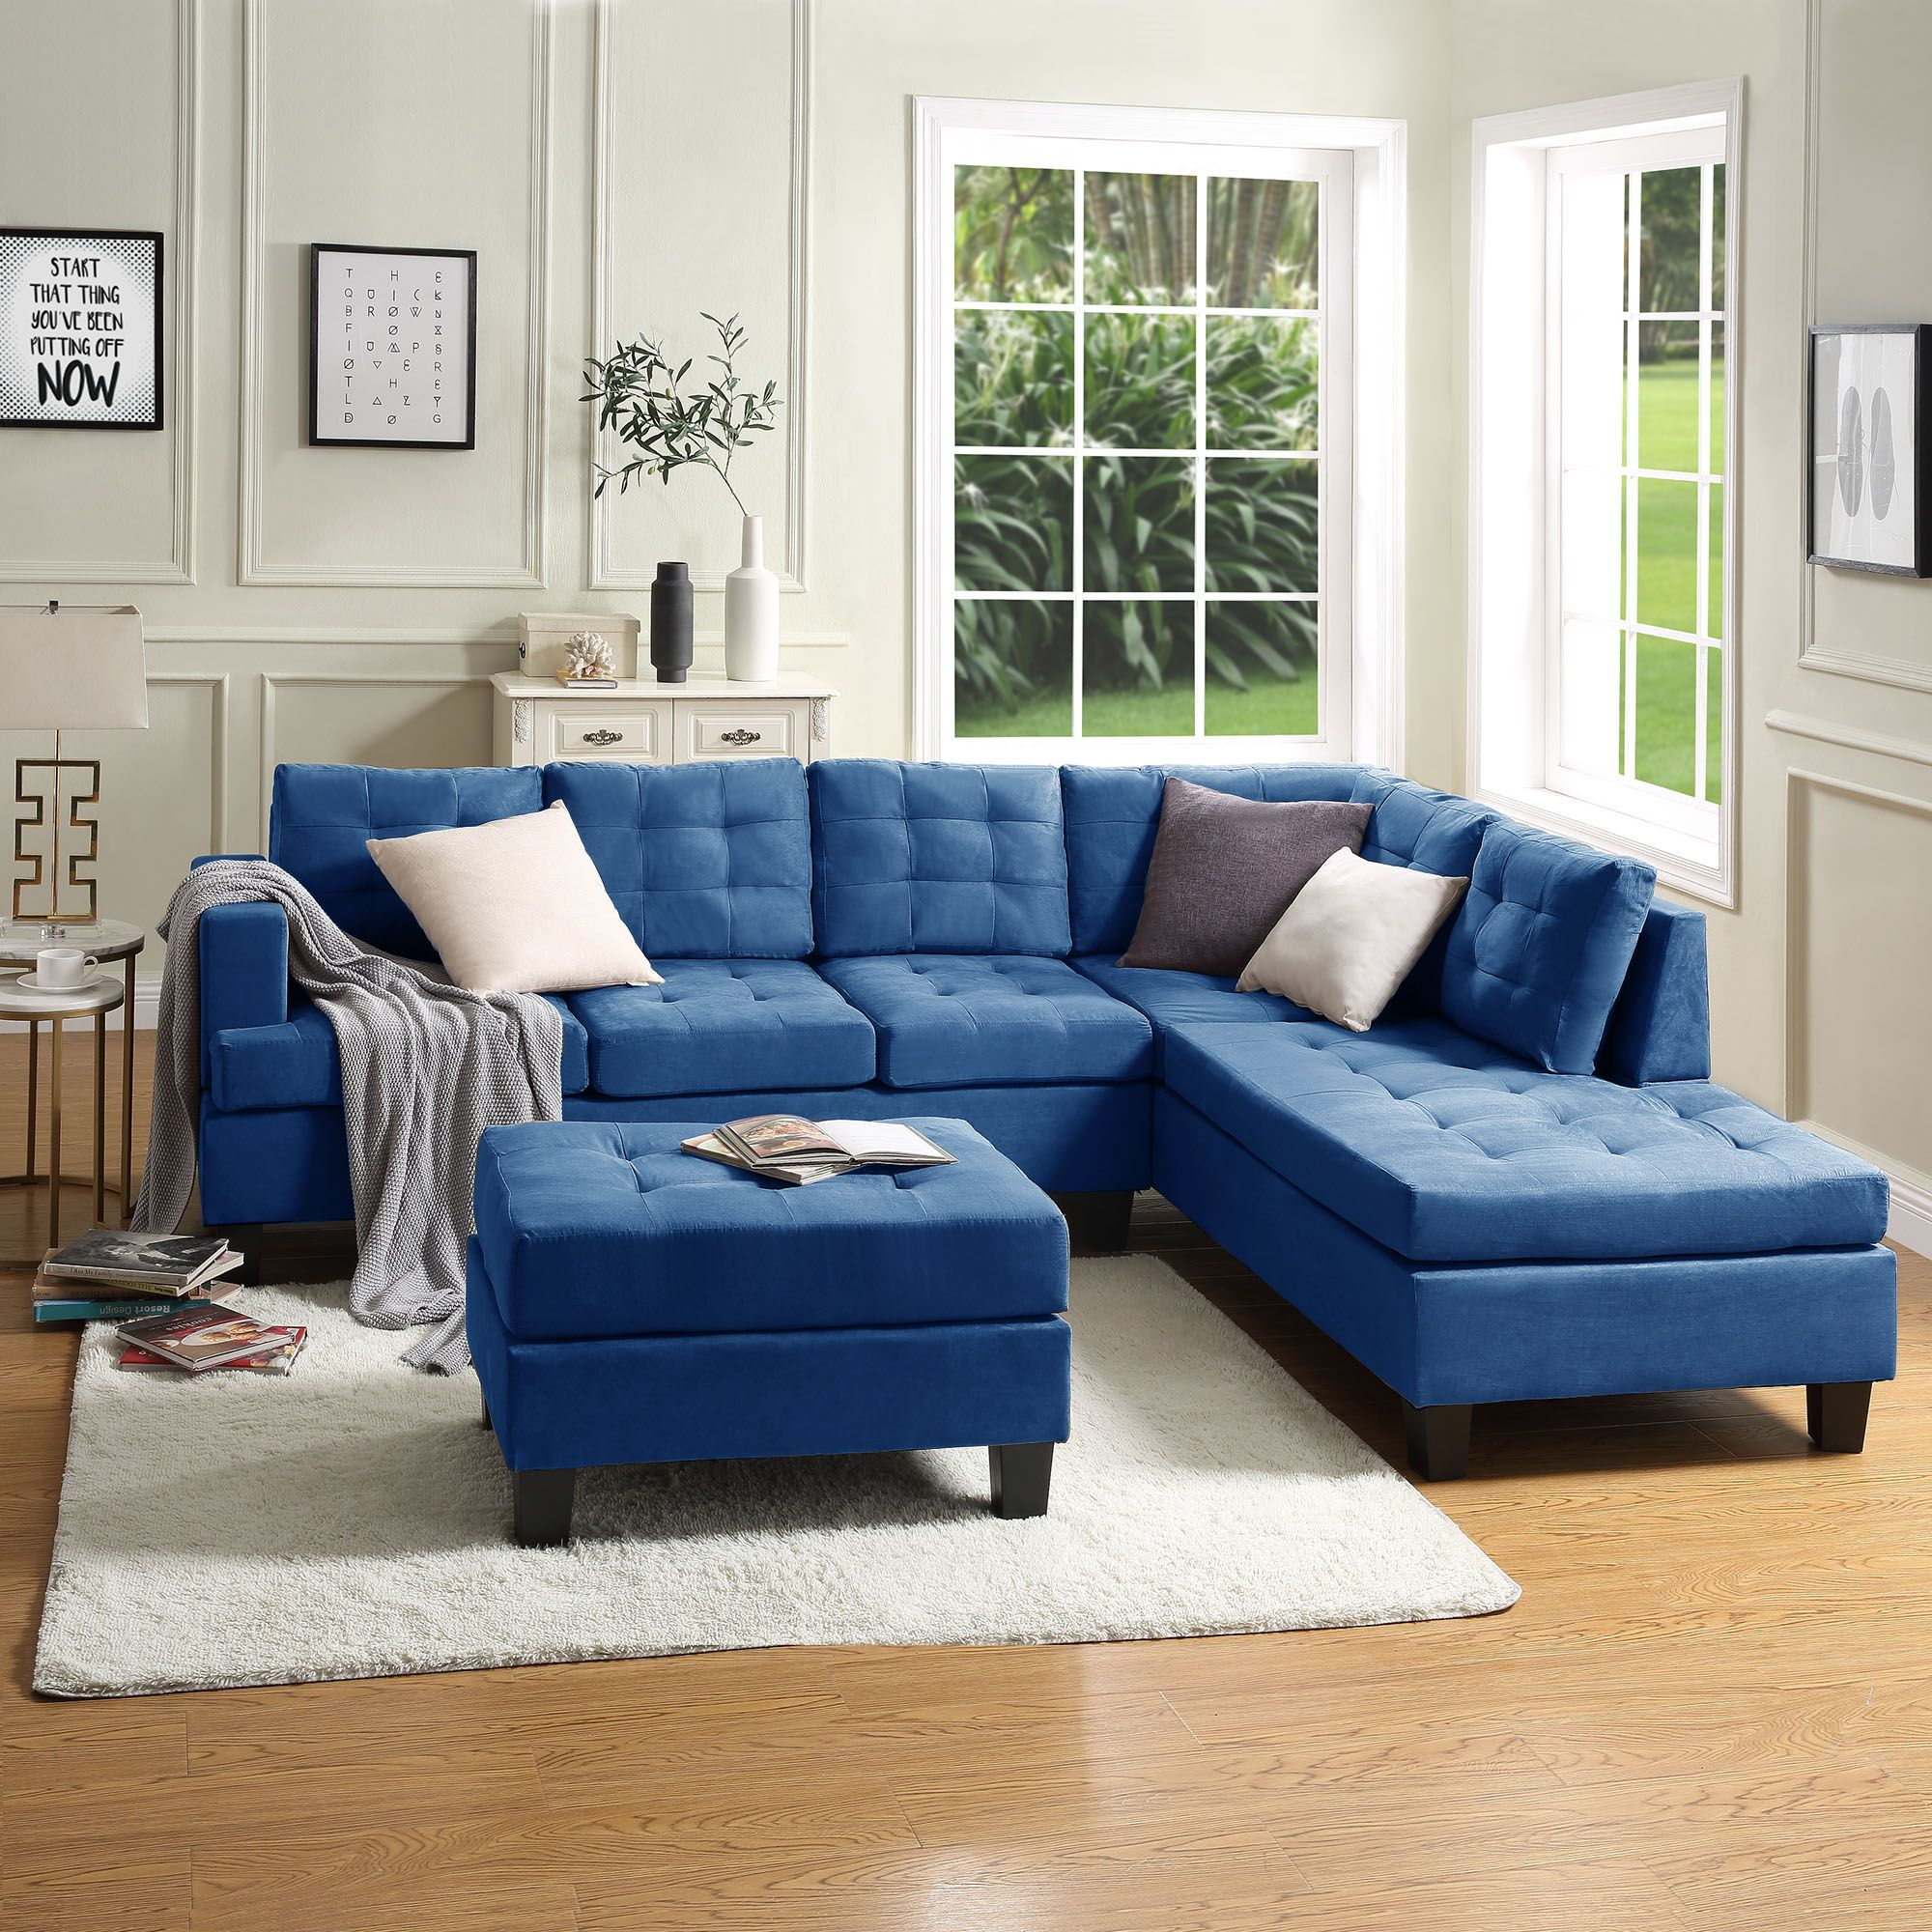 Sectional Sofa 105 L Shape Sectional Couch With Reversible Chaise Solid Wood Frame And Legs Couches And Sofas Mid Century Sofa Couch With Modern Fabric Otto Blue Living Room Sets Blue Living